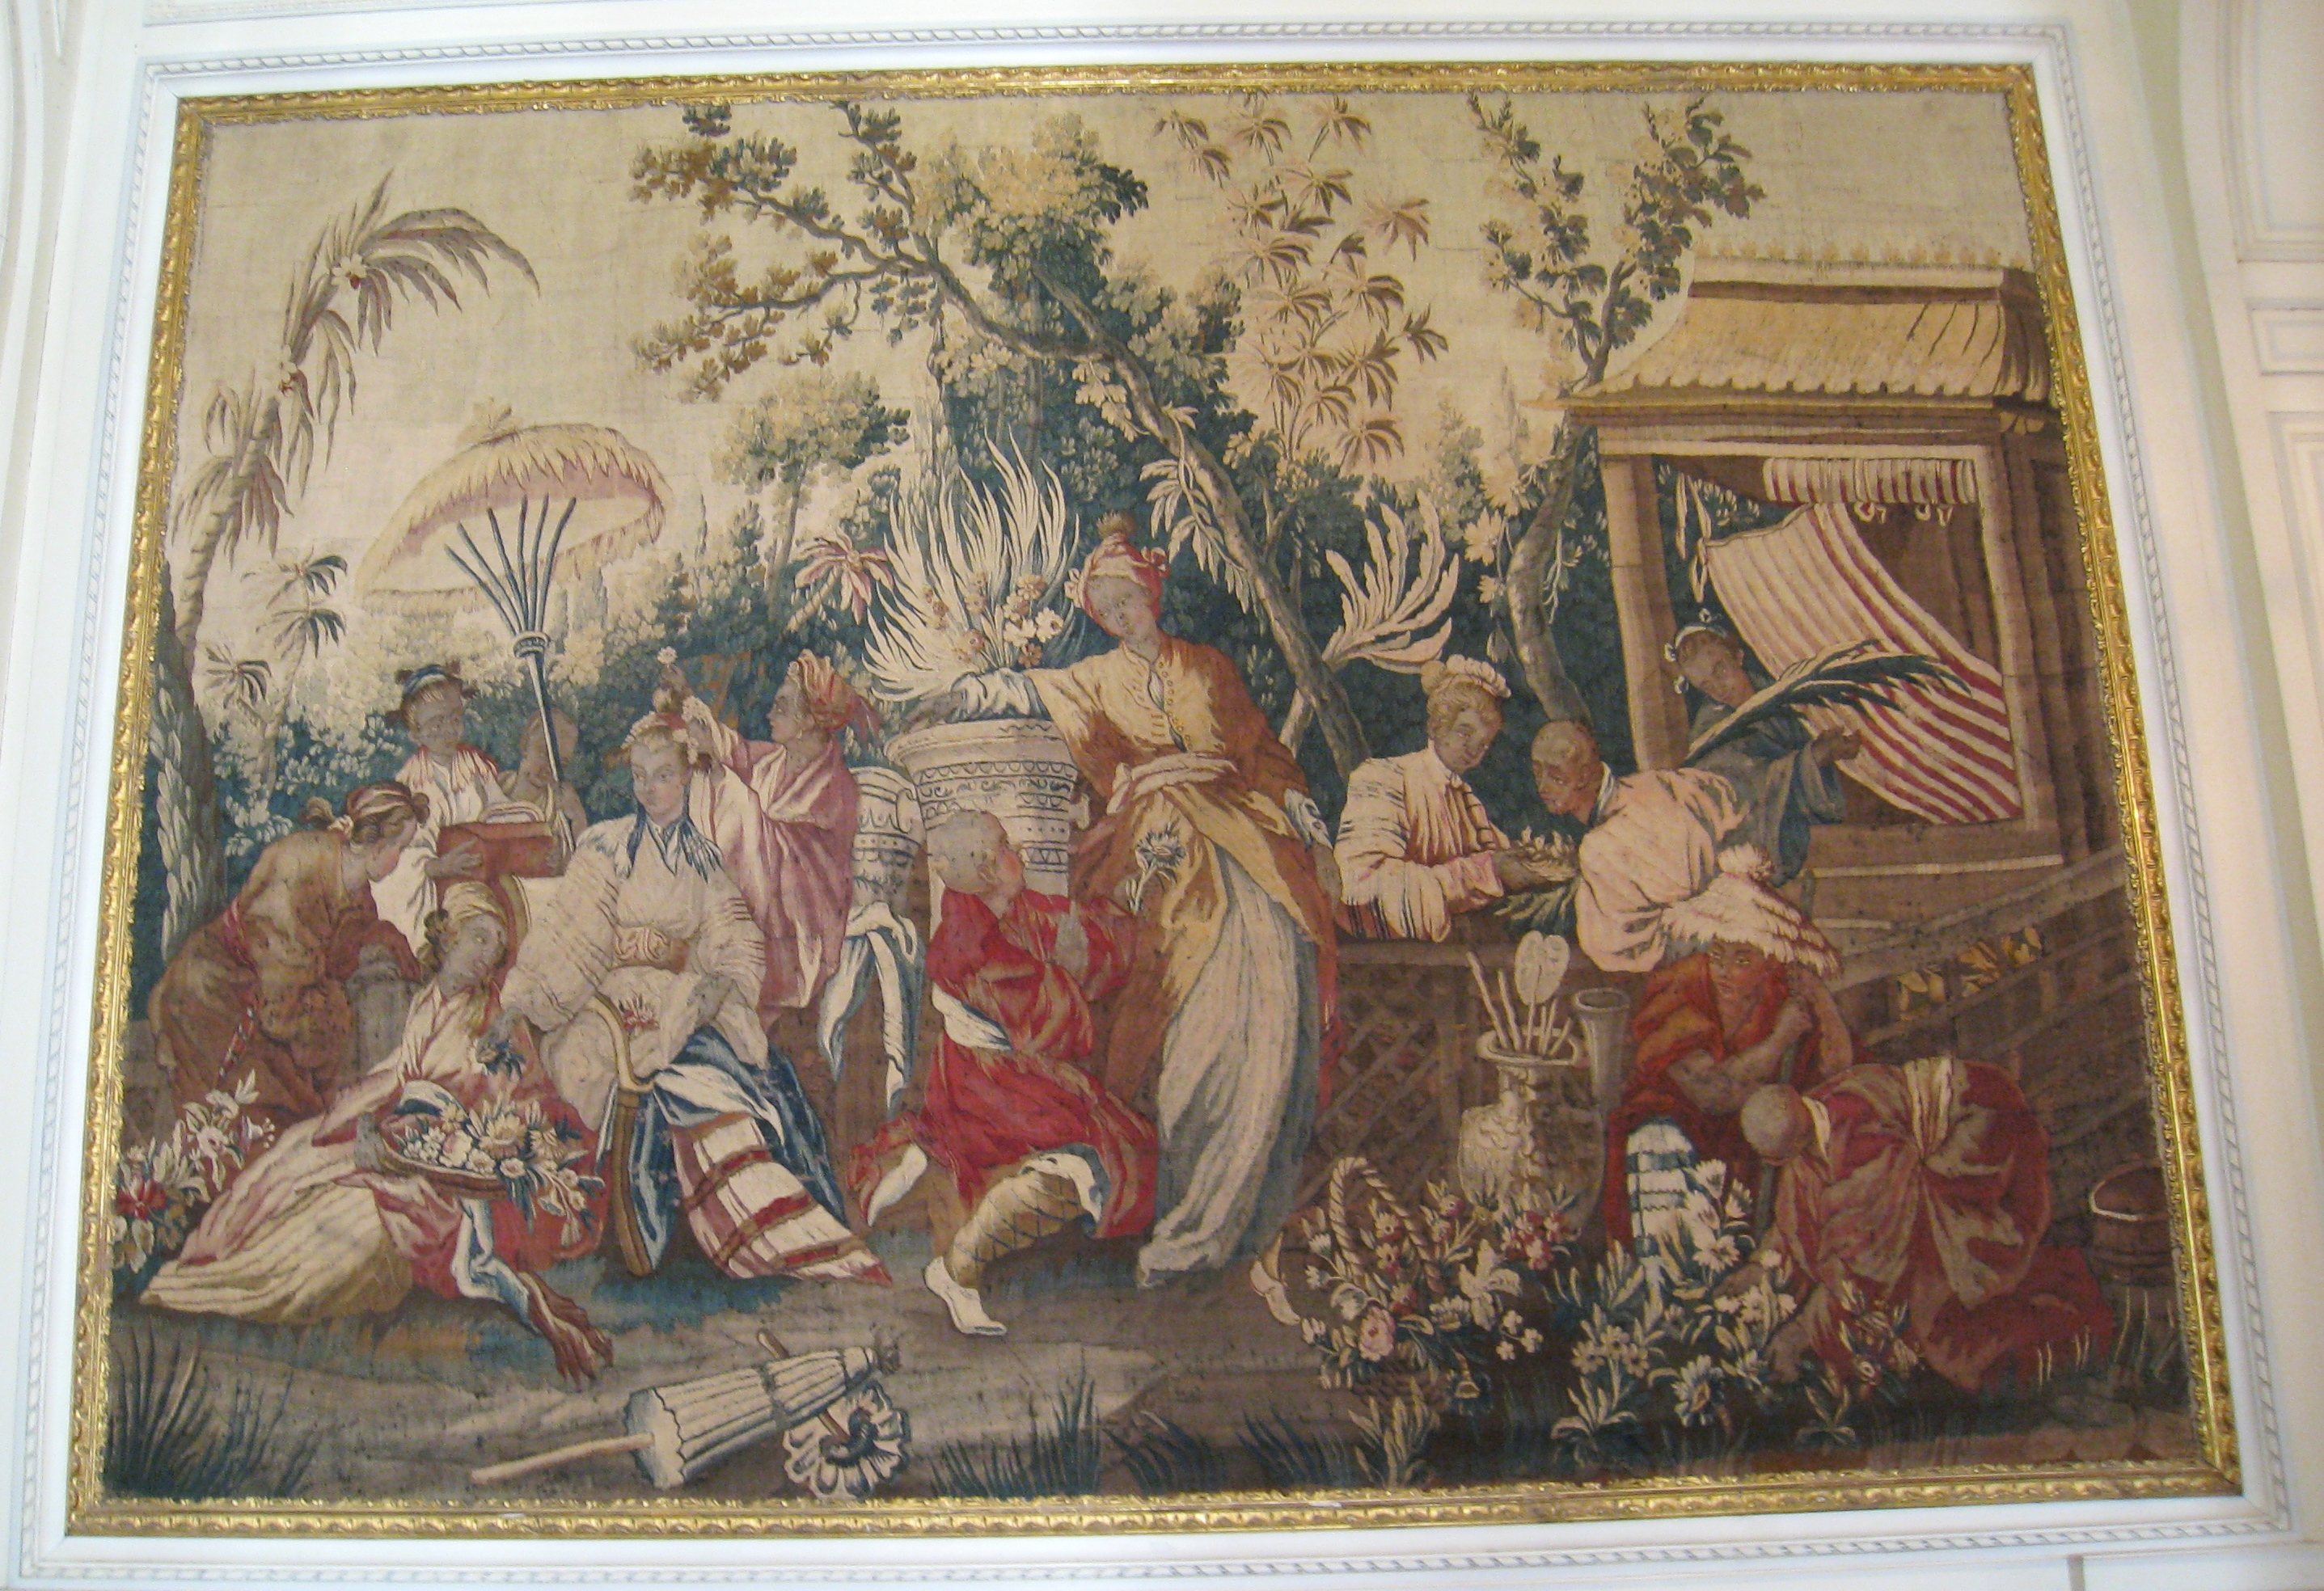 Chancellerie tapestry by Gobelins, circa 1680. Photo taken at Musée Nissim de Camondo, Paris, France, on February 7, 2008.